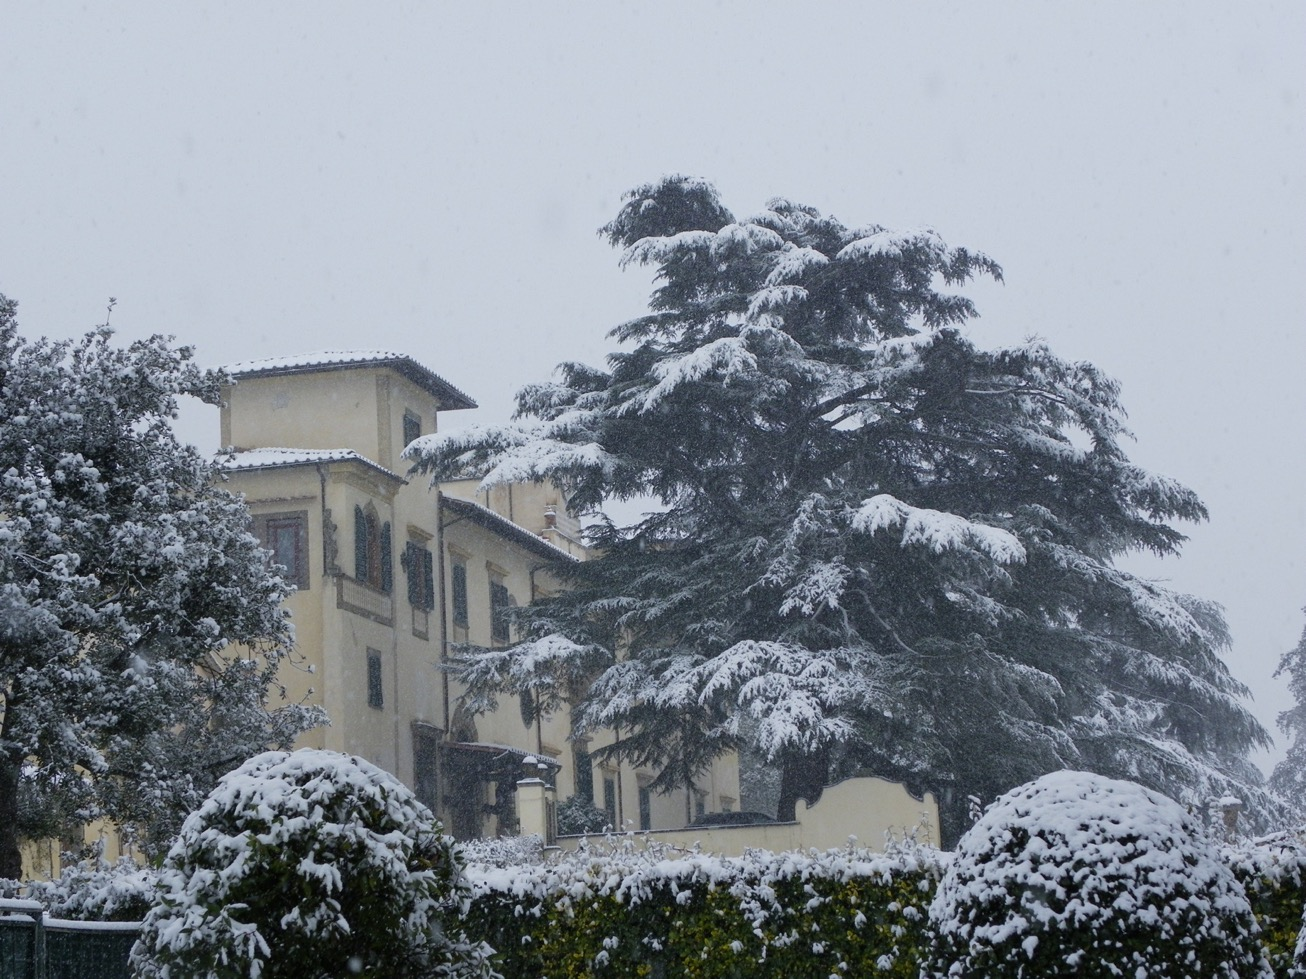 Snow in Firenze